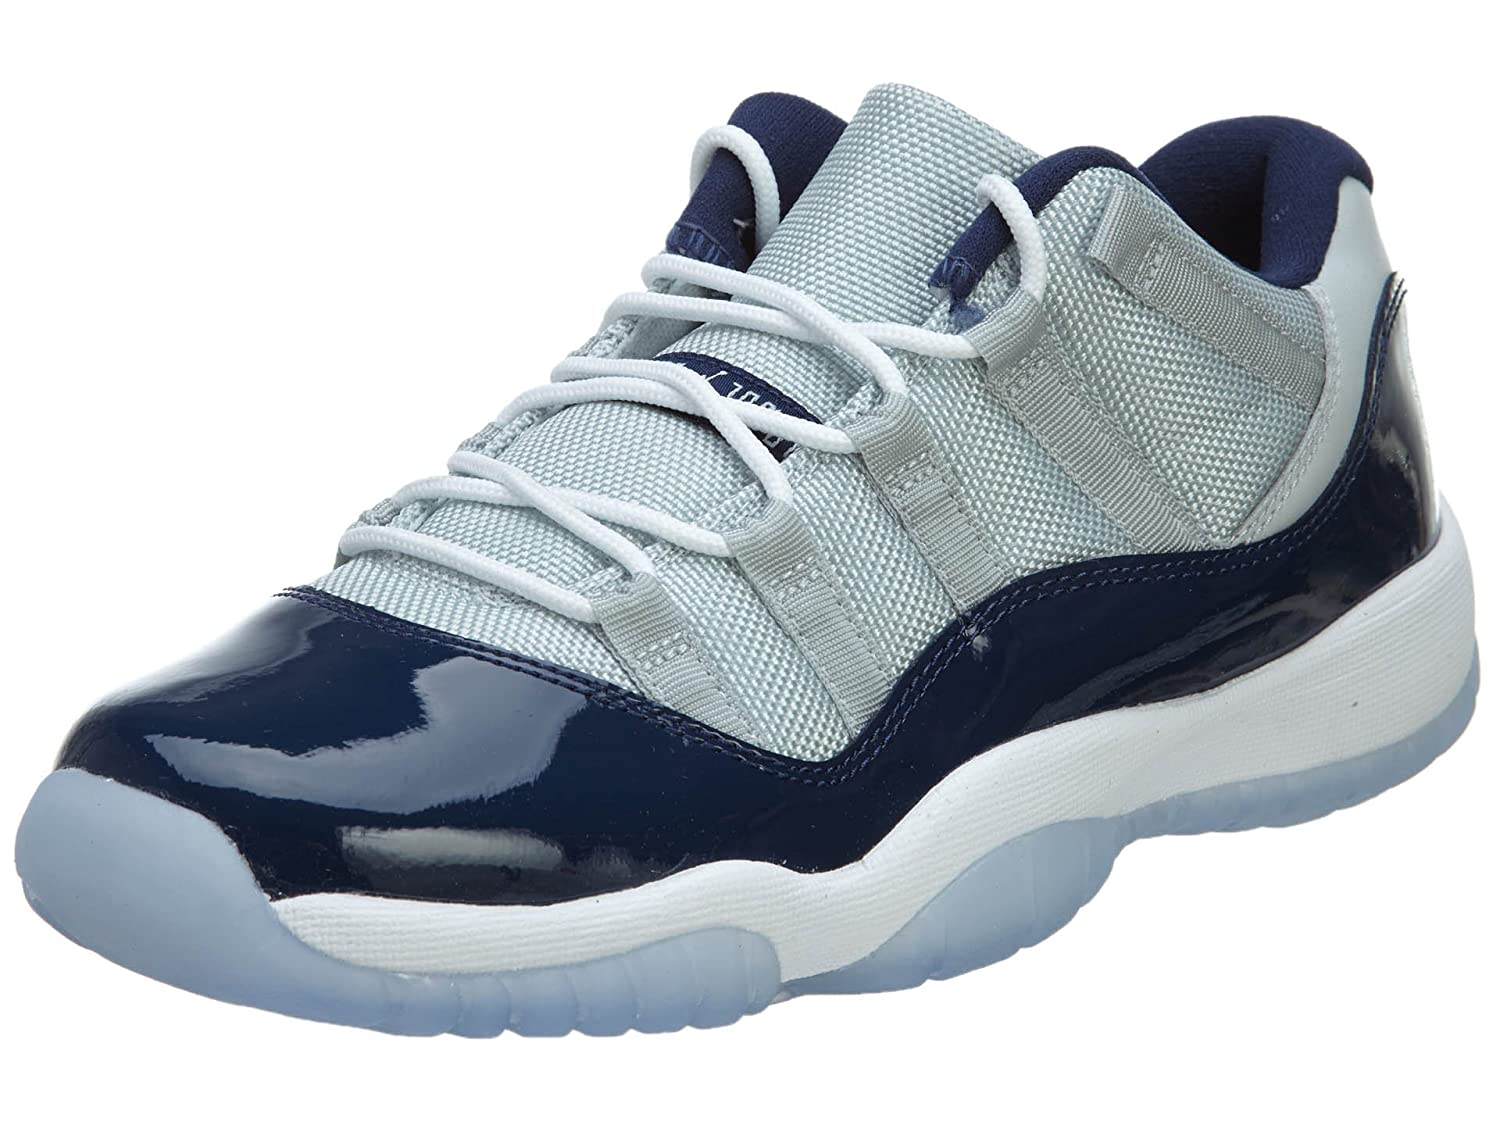 AIR JORDAN 11 RETRO LOW BG (GS) 'GEORGETOWN' -528896-007 - SIZE 4.5